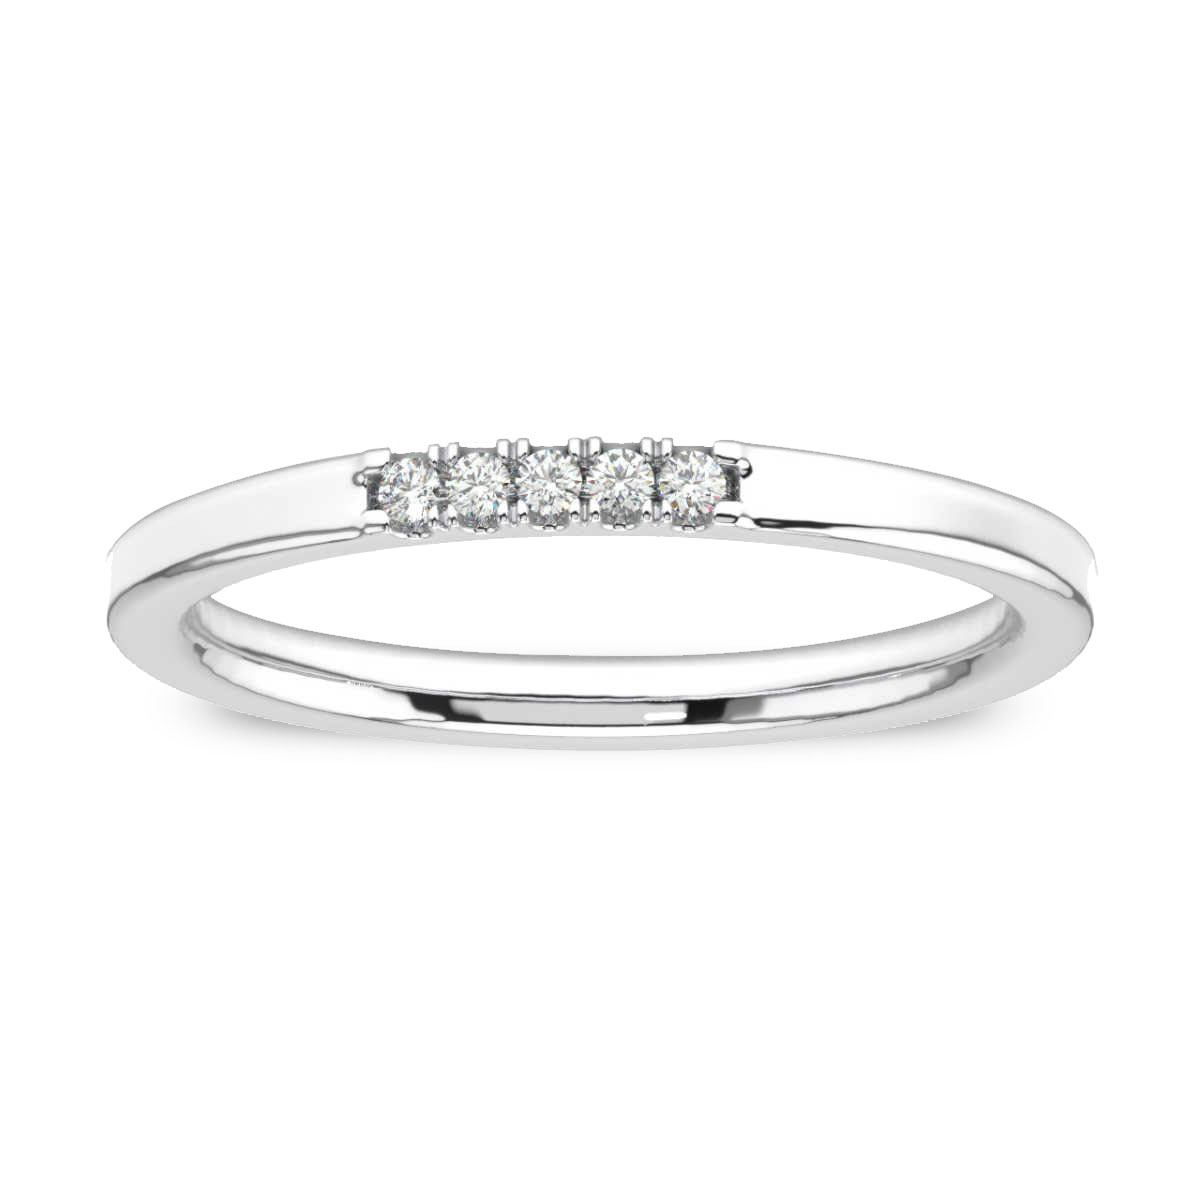 14K White Gold Gina Petite Stackable Diamond Ring (1/20 ct. tw)